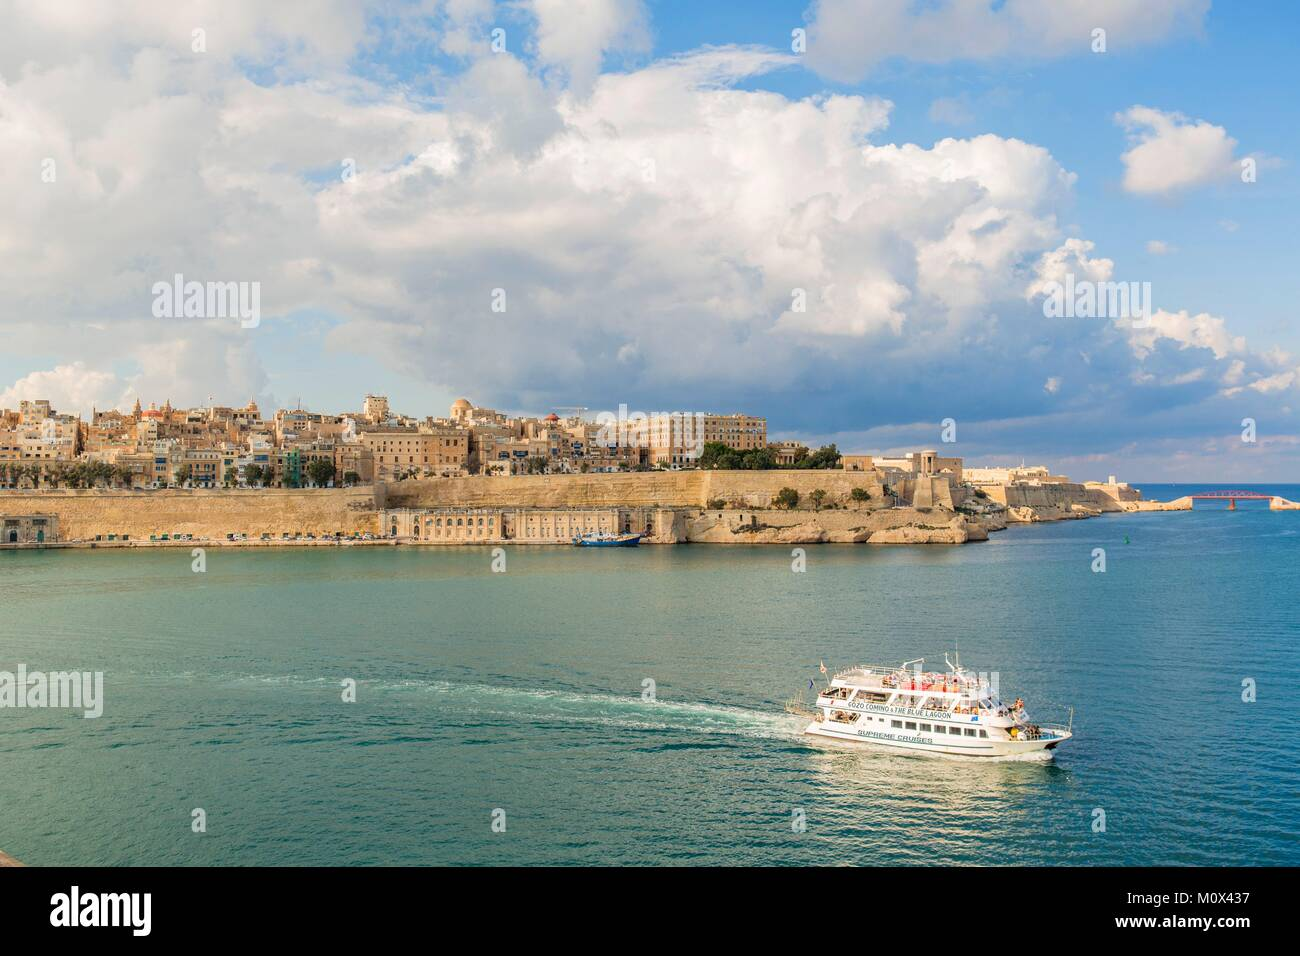 Malta,Valletta,listed as World Heritage by UNESCO,Grand Harbour - Stock Image